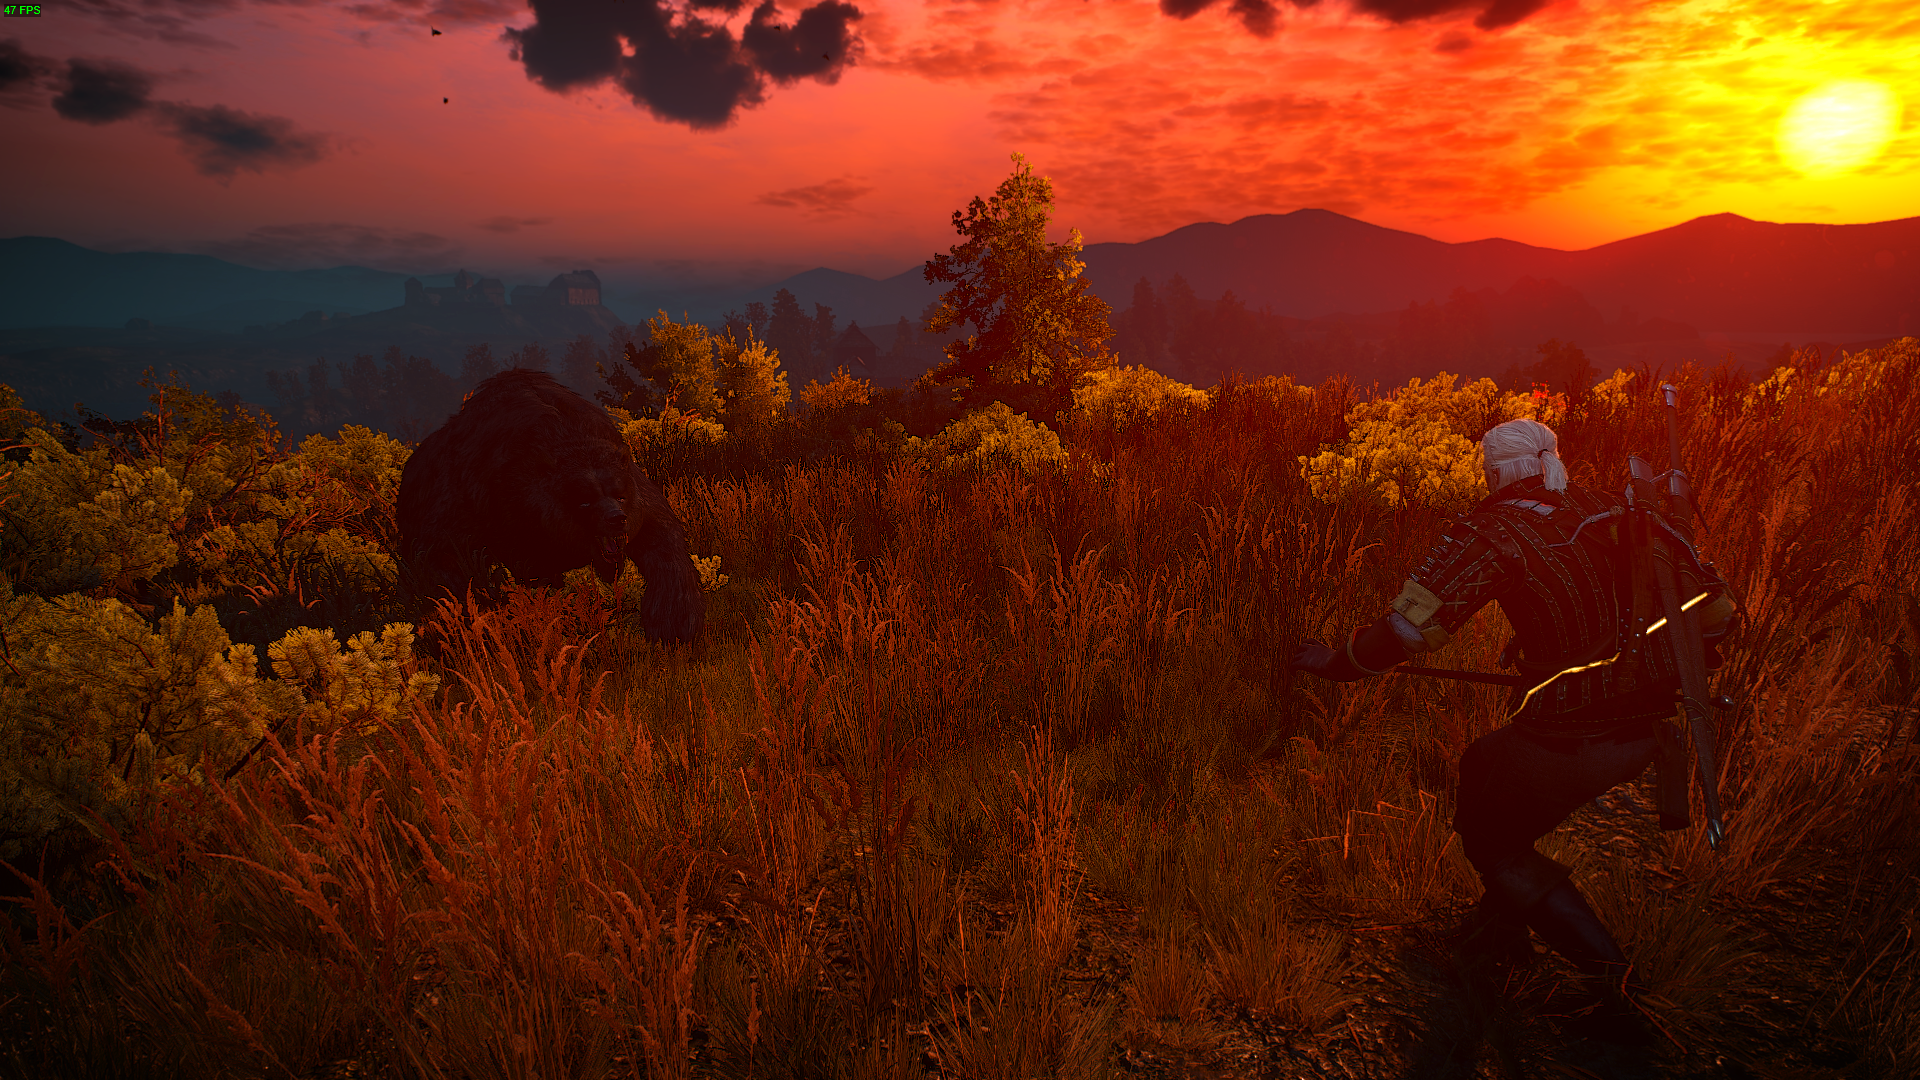 The Witcher 3 Screenshot 2017.05.22 - 17.32.49.44.png - Witcher 3: Wild Hunt, the